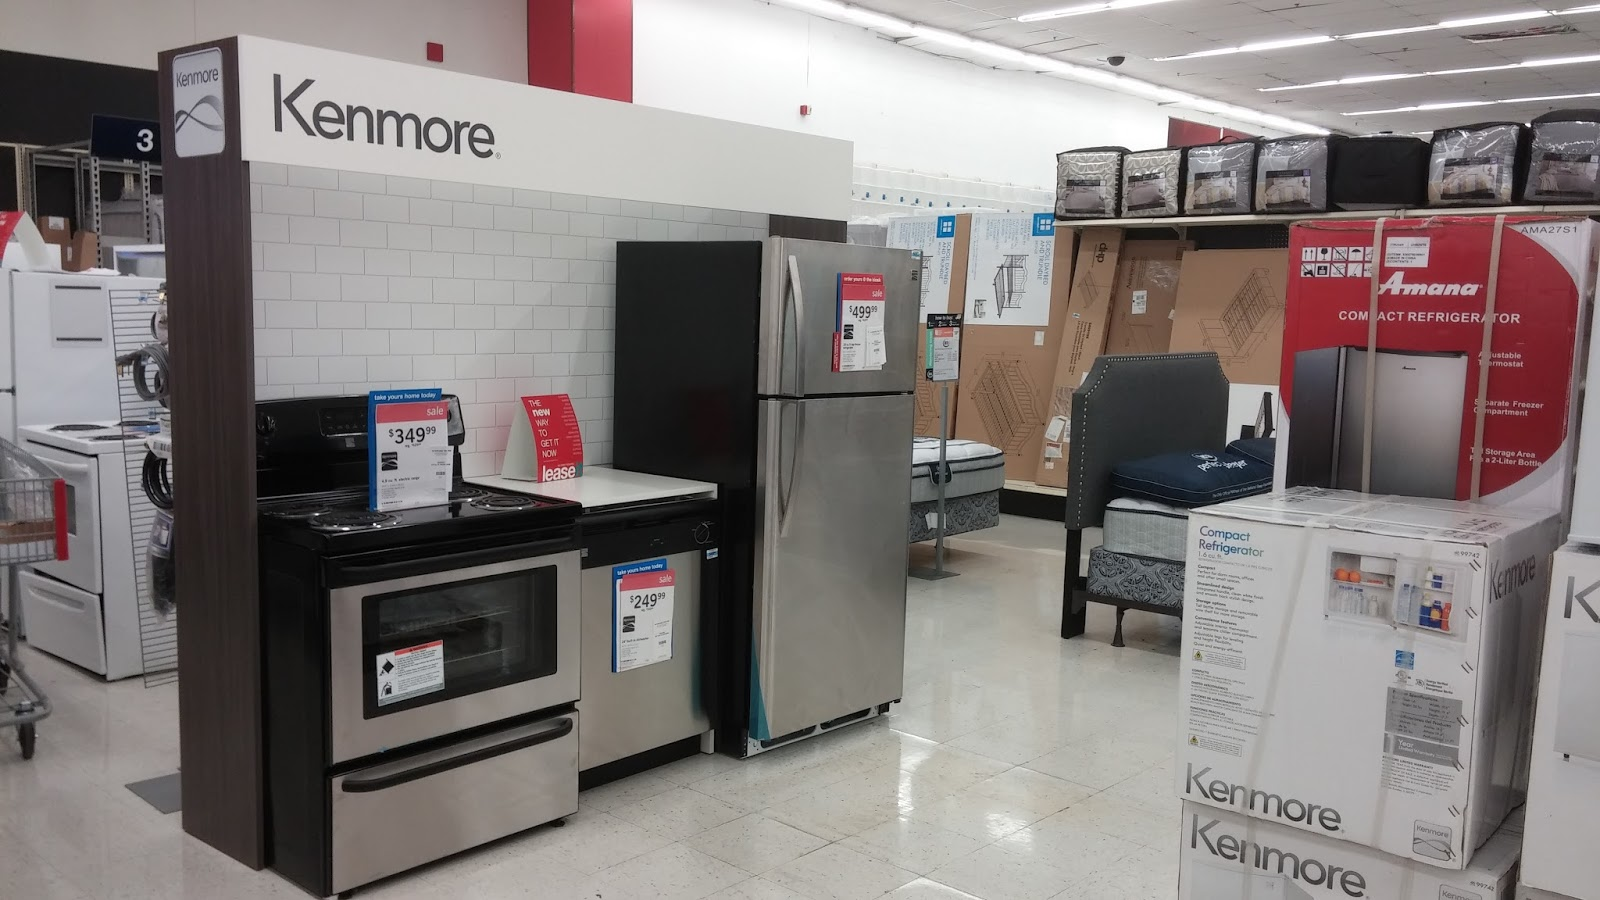 refrigerator kmart. kmart\u0027s electronics sections have been collectively dwindling around the county, and memphis store is no exception. what\u0027s left of likely refrigerator kmart